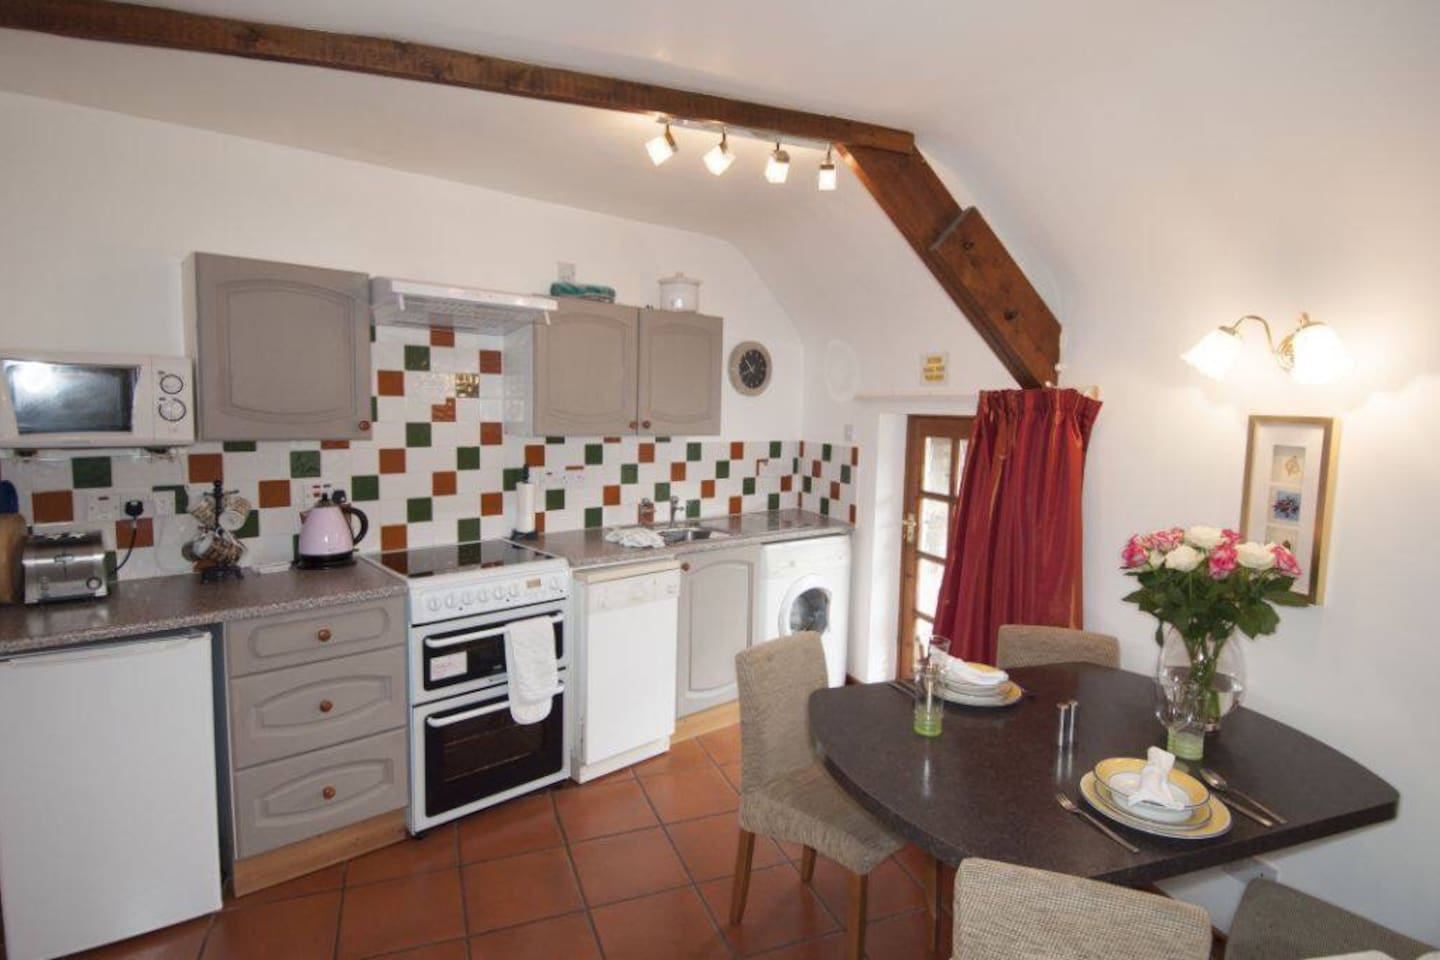 Well equipped kitchen with washing machine, electric cooker, dishwasher, microwave etc